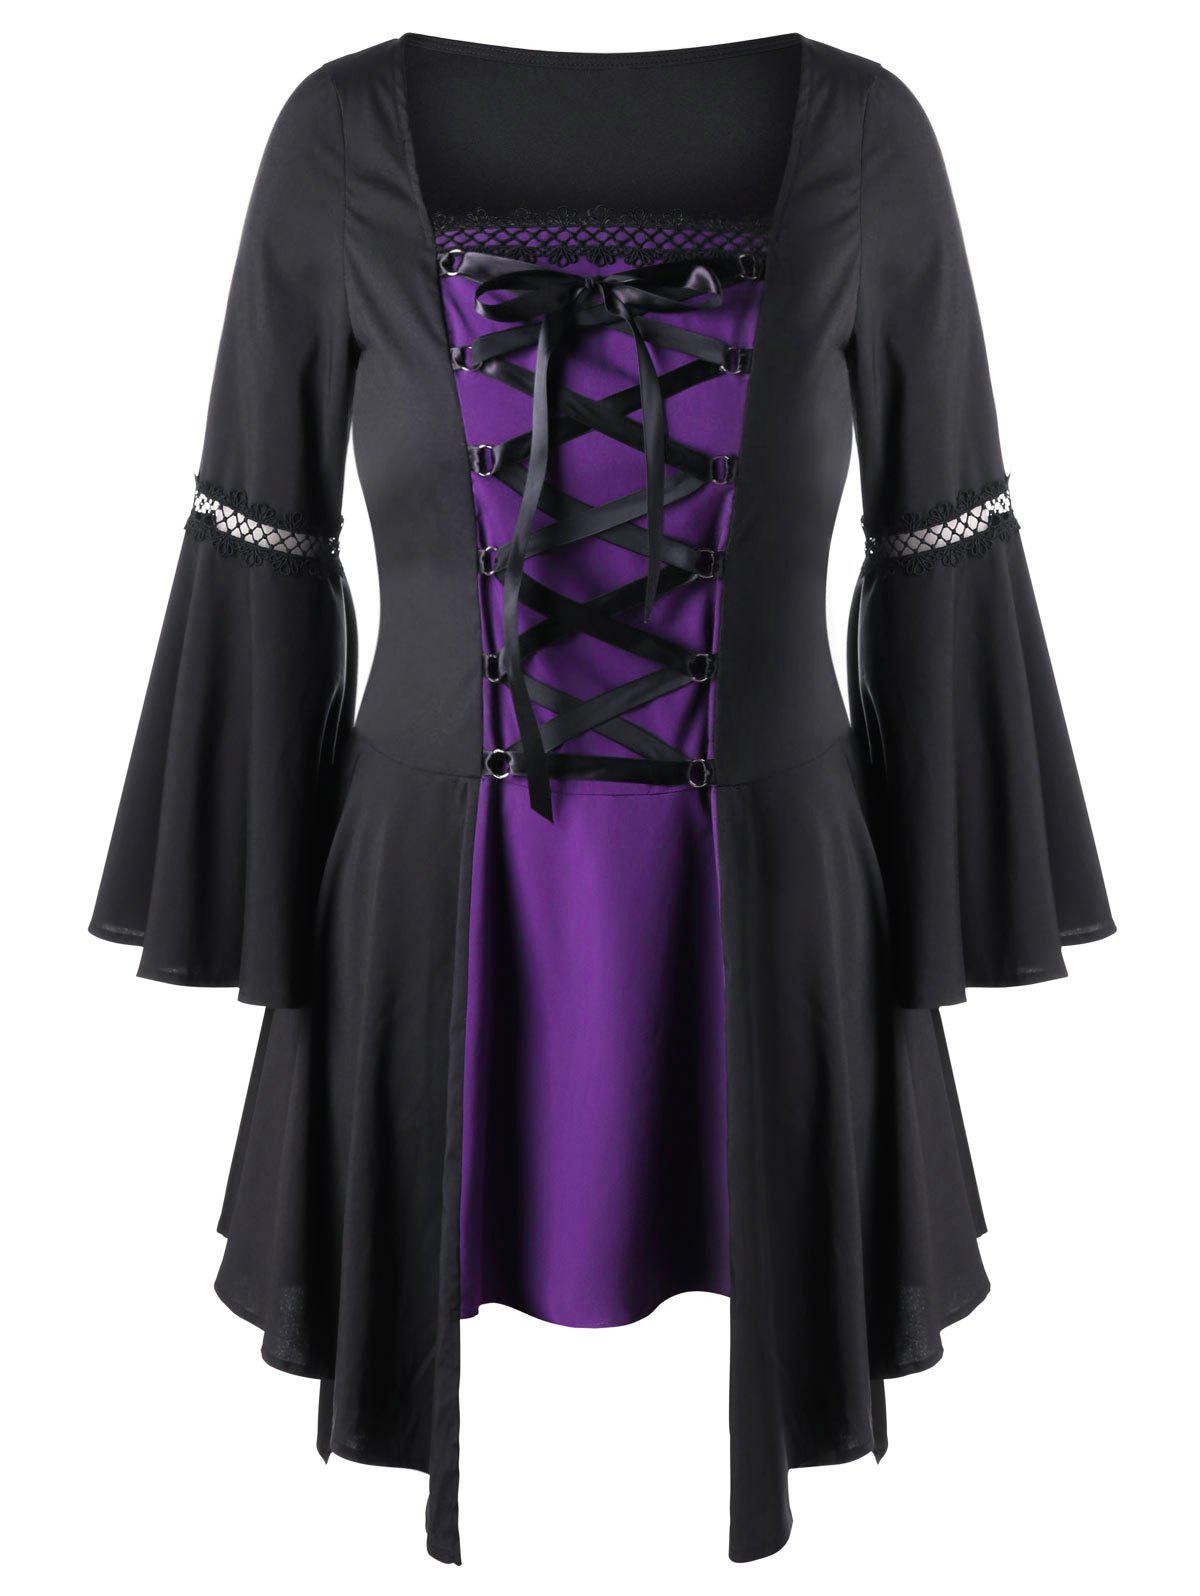 Plus Size Lace Up Handkerchief Top - BLACK/PURPLE 5XL